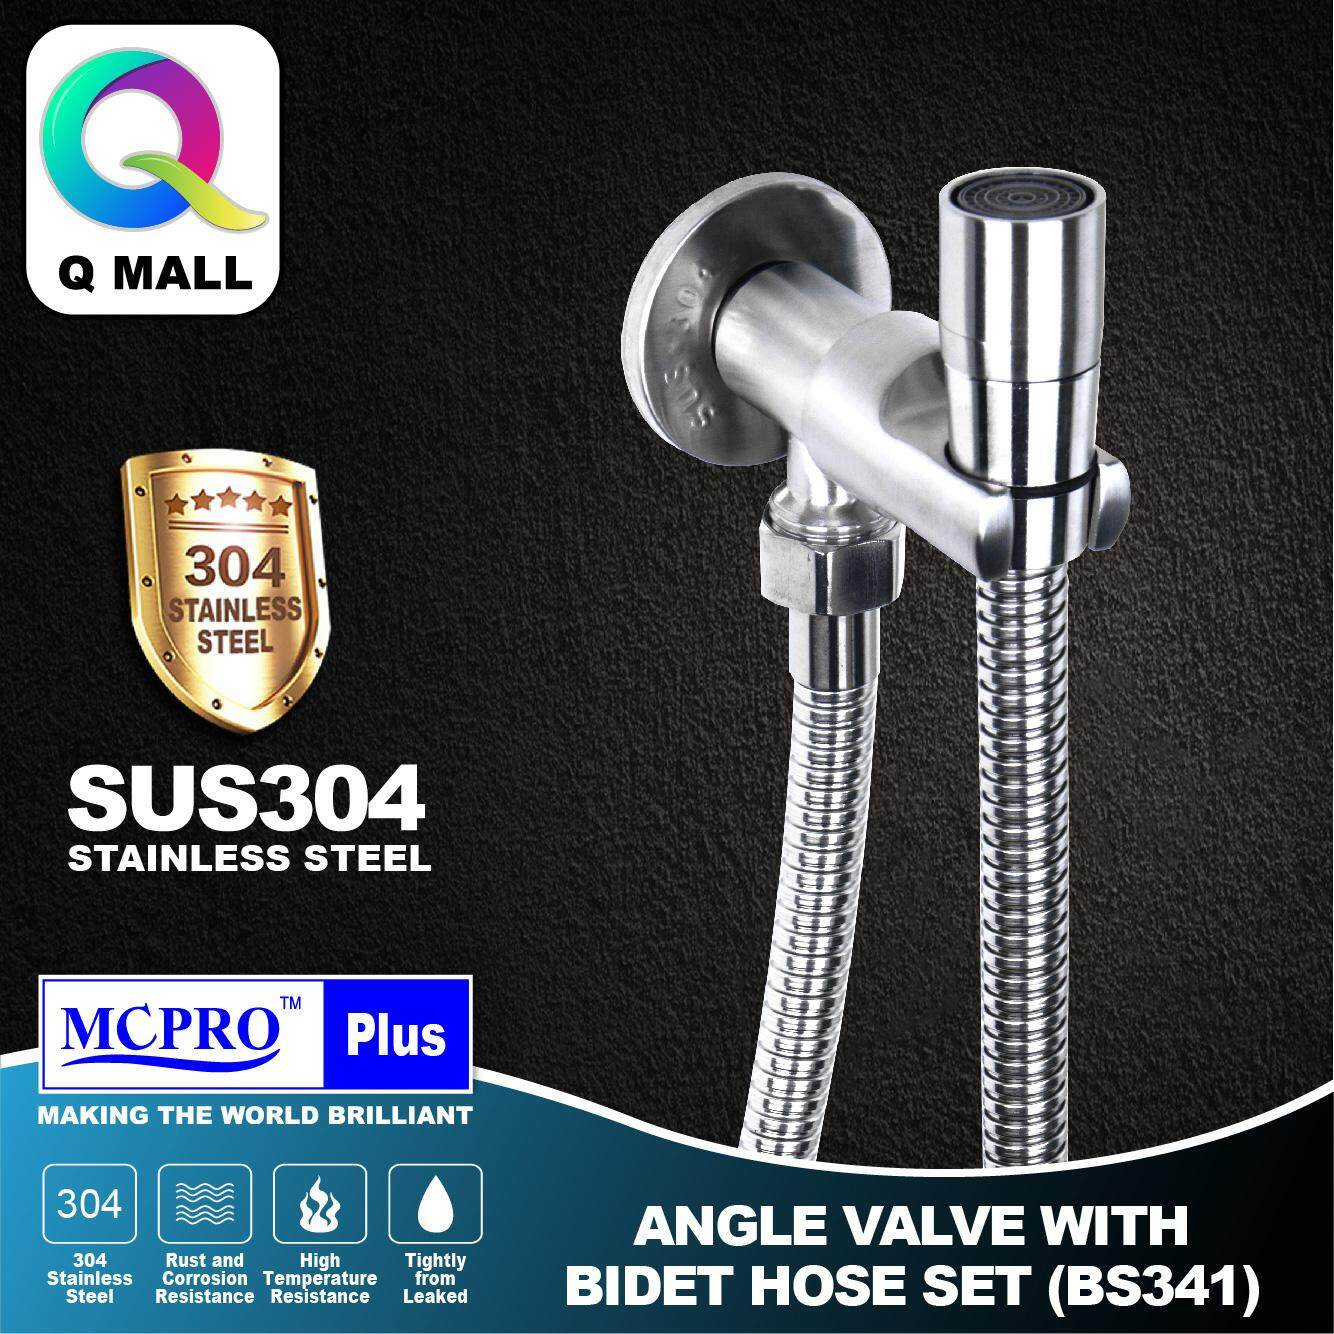 MCPRO Plus Stainless Steel SUS 304 Bathroom Faucet ANGLE VALVE WITH BUBBLER HEAD AND FLEXIBLE HOSE SET (BS341)